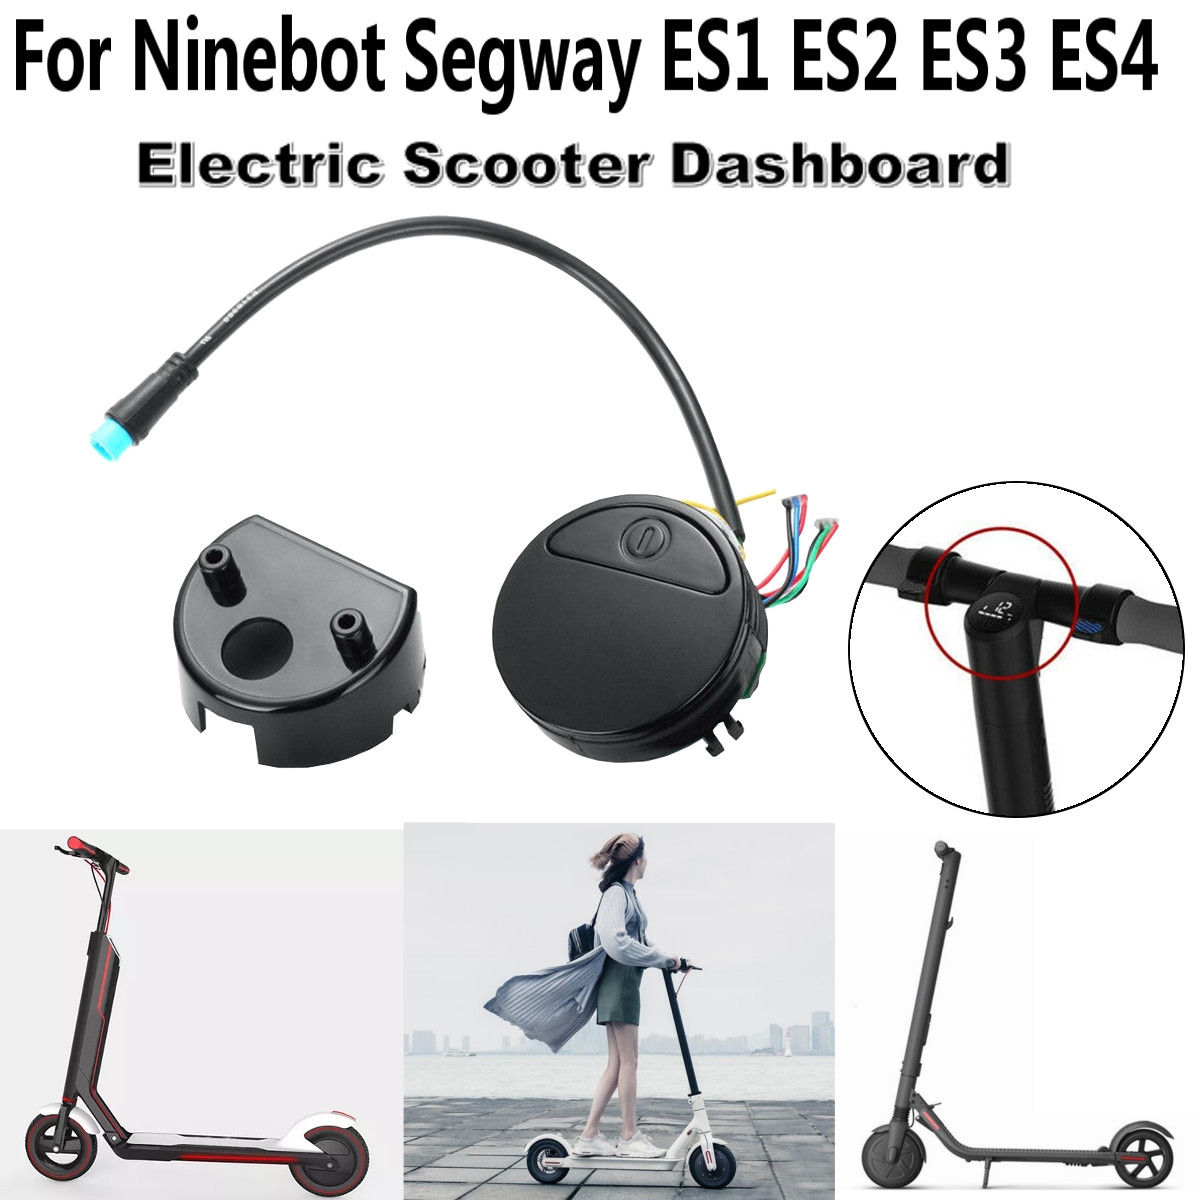 Electric Scooter Circuit Board Dashboard Cover For Xiaomi M365 Electric Skateboard For Ninebot Segway ES1 ES2 ES3 ES4 Switch